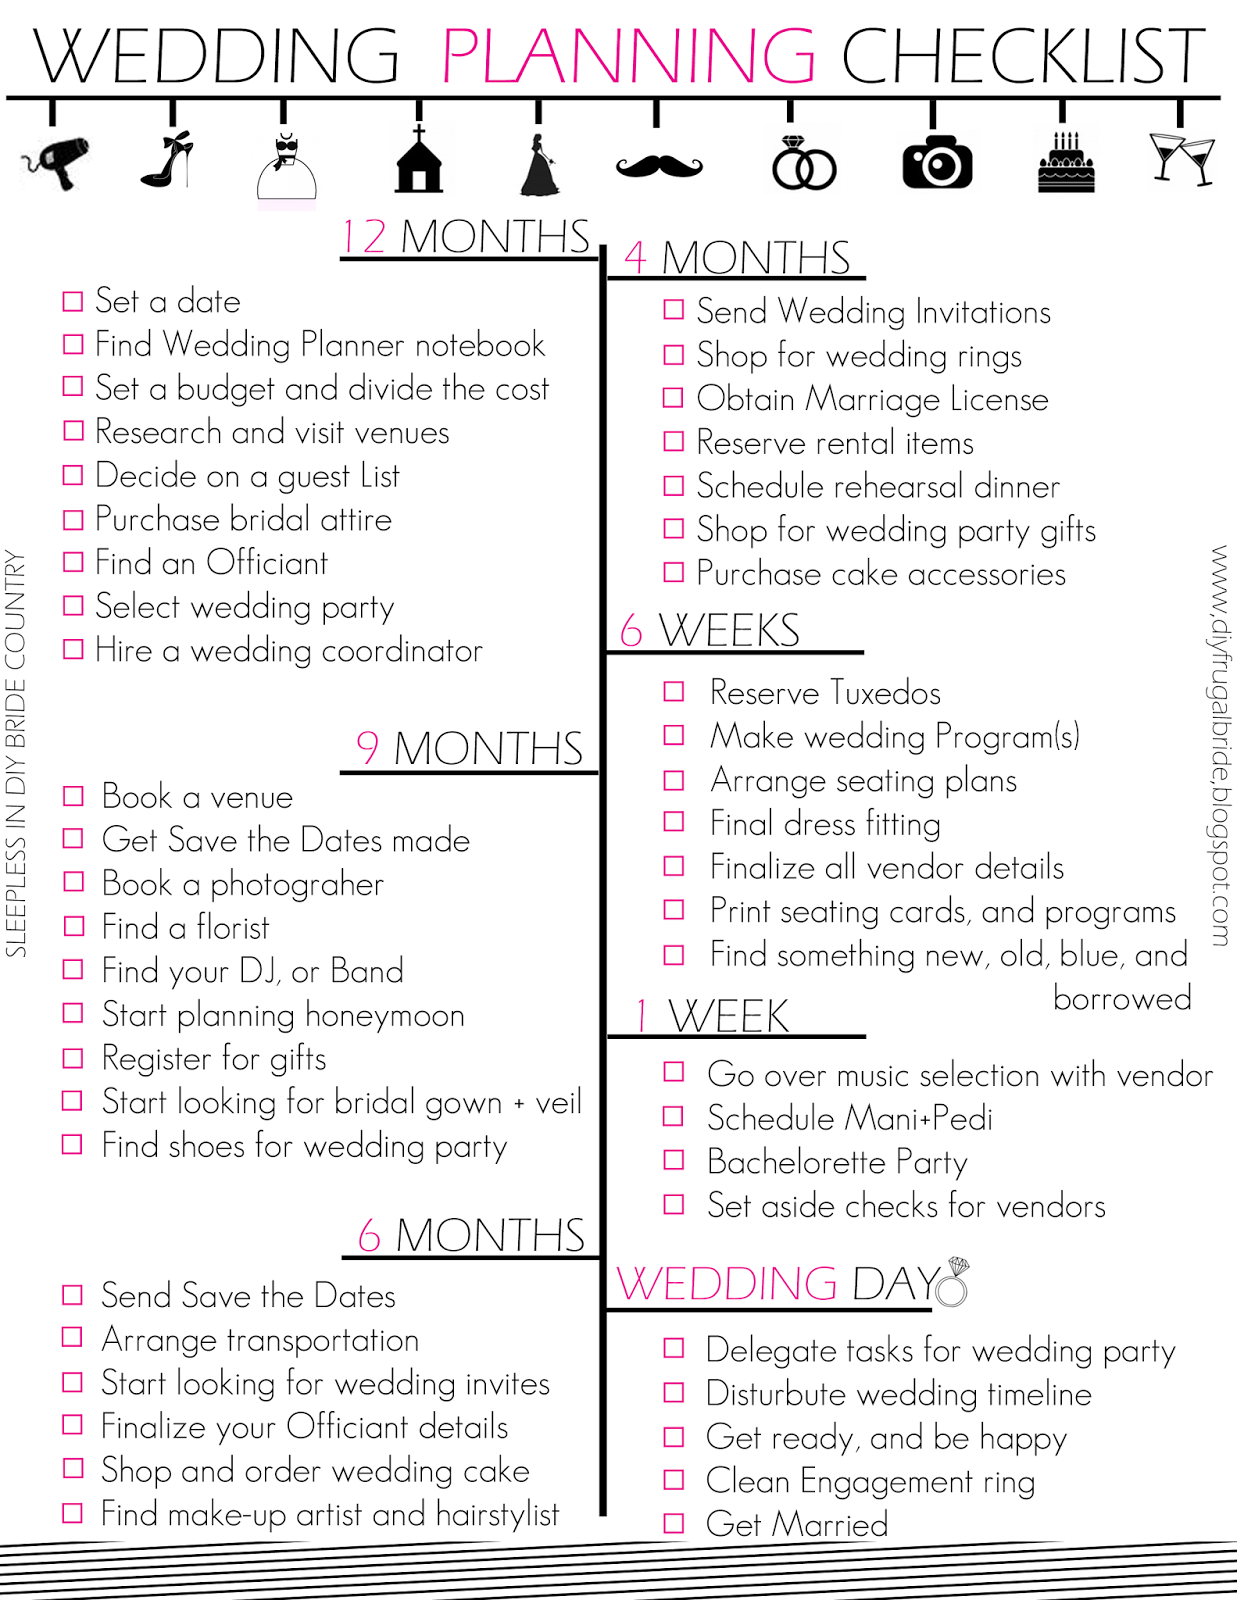 Budget Bride Wedding Checklist and Budget Tips | Projects ...